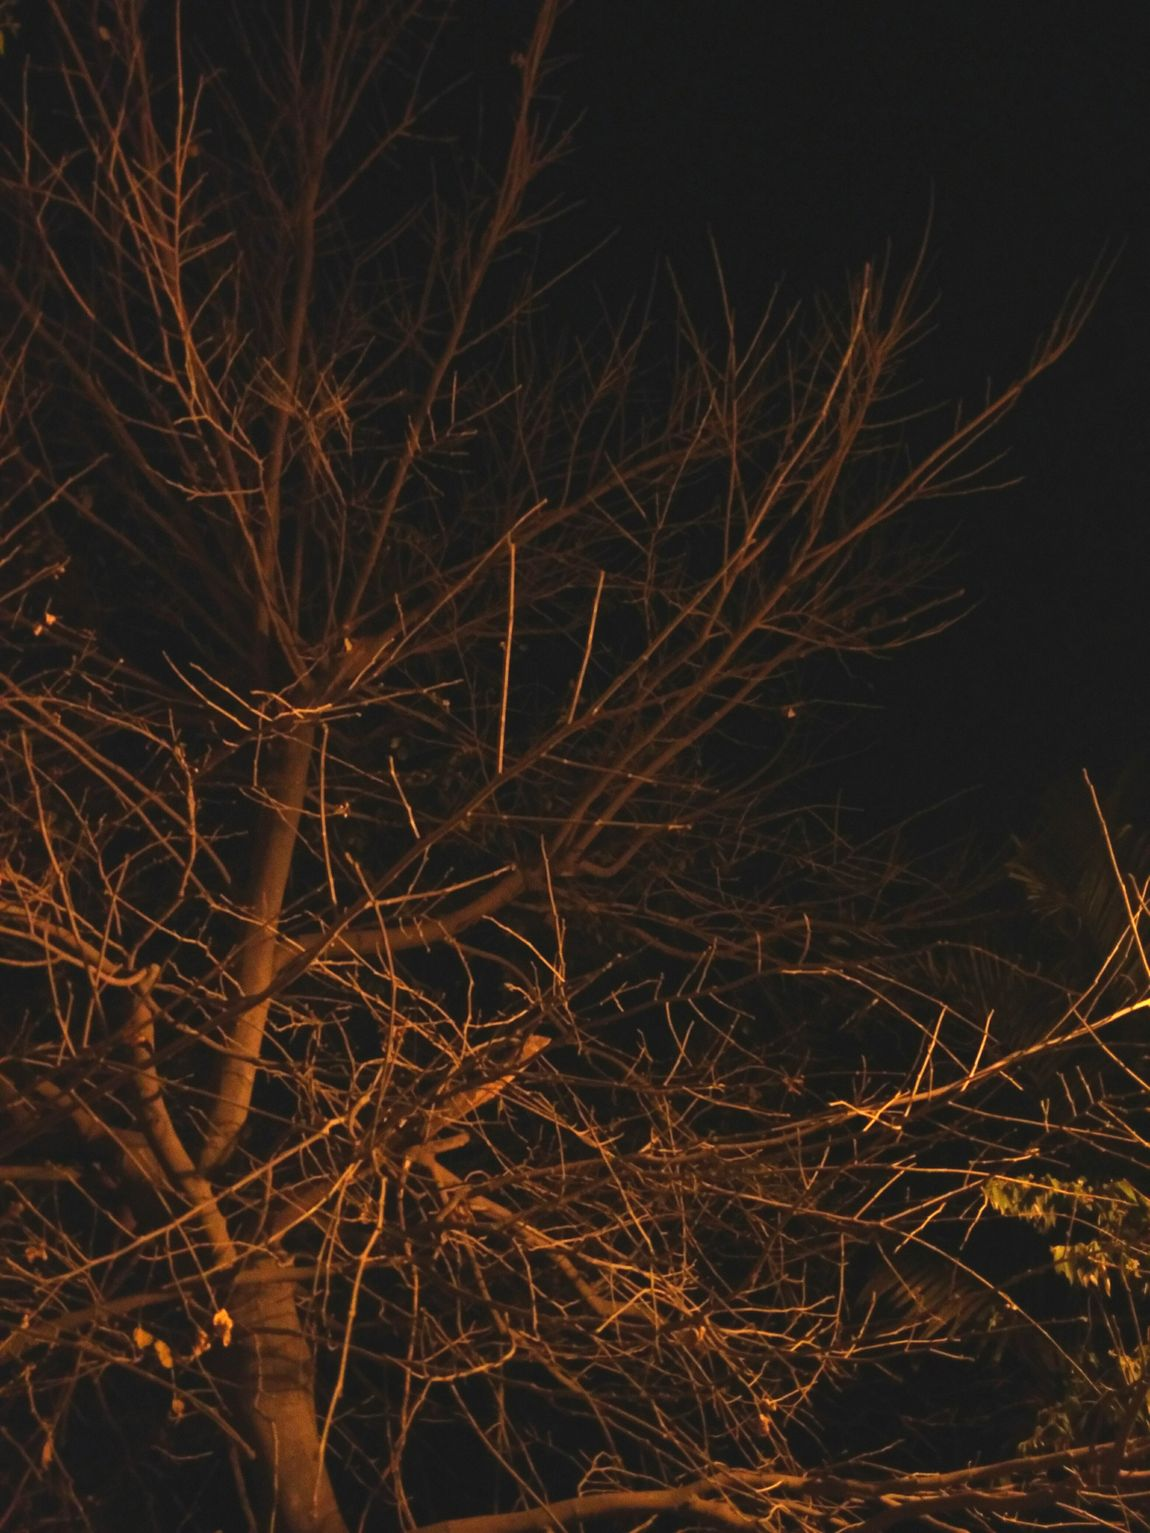 Withered to be born again Withered Tree Naked Bare Tree Street Lights Shadows Draw Against Black Dark Background Minimal Simple Beauty Bare Beauty Night Lights Night Photography Just Enough Composition EyeEm Gallery